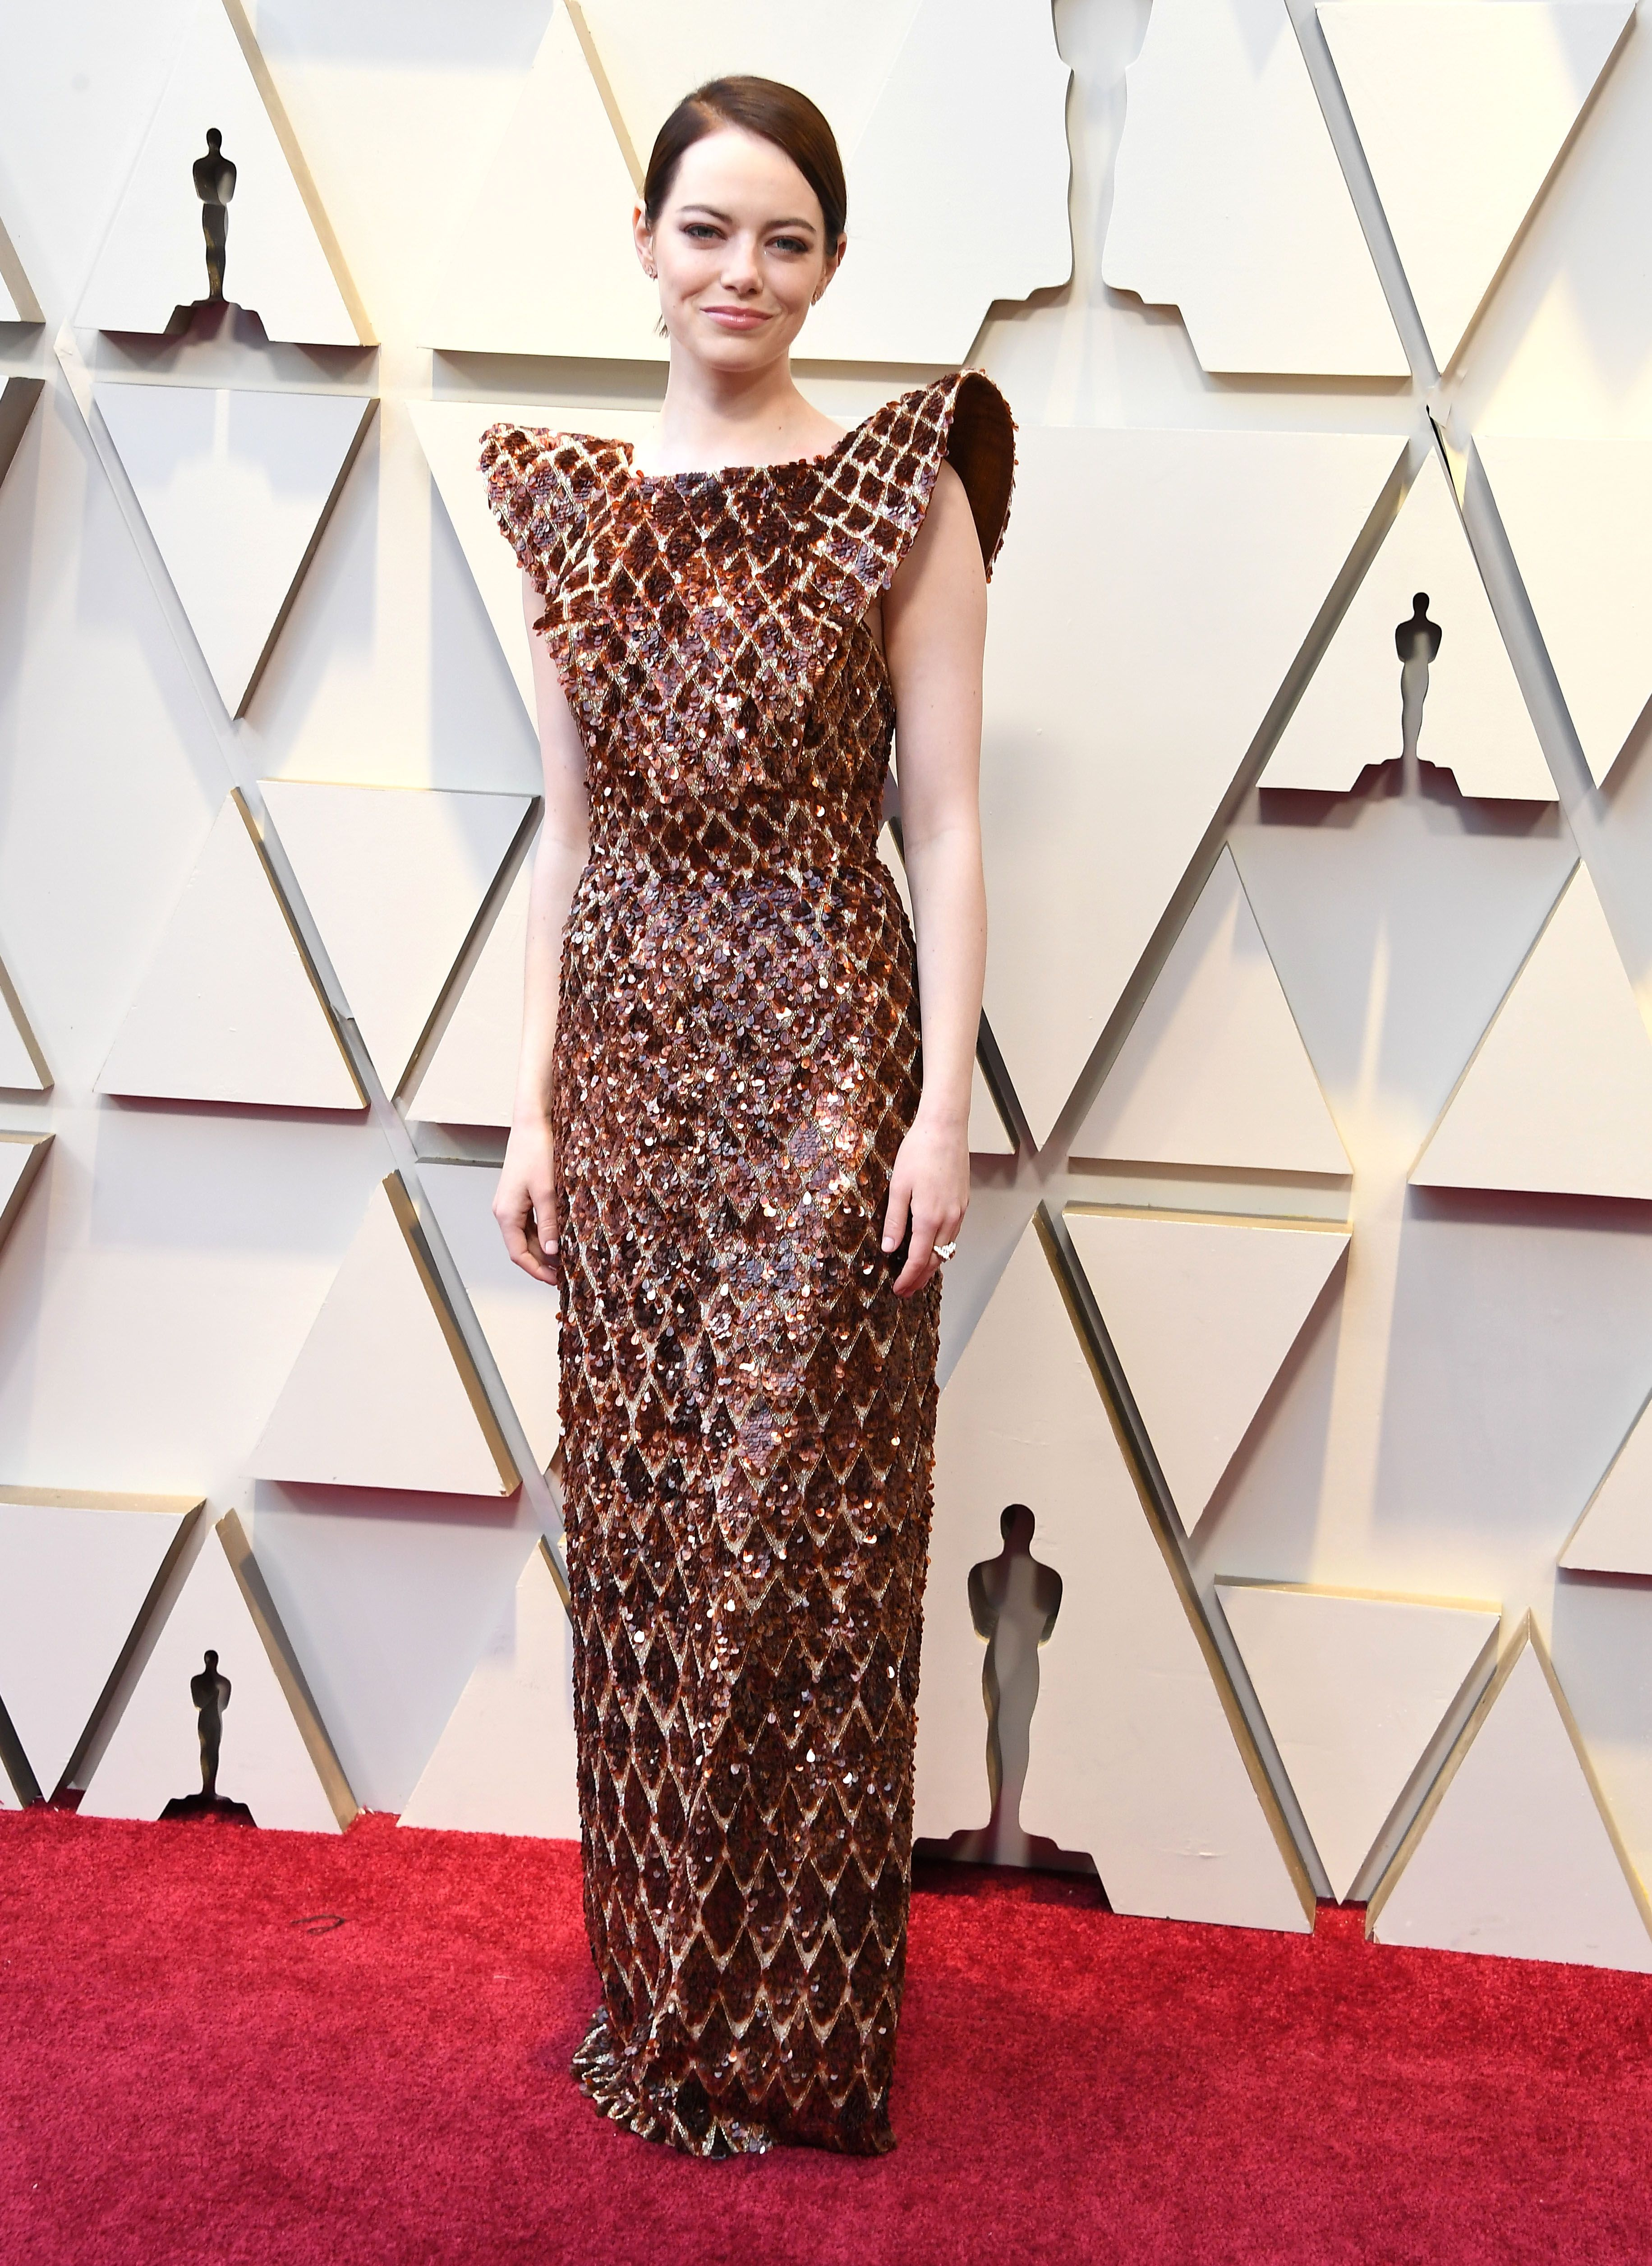 f82fb391f Twitter Thinks Emma Stone's Oscars Dress Looks Like A Waffle Cone, And We  Can't Unsee It